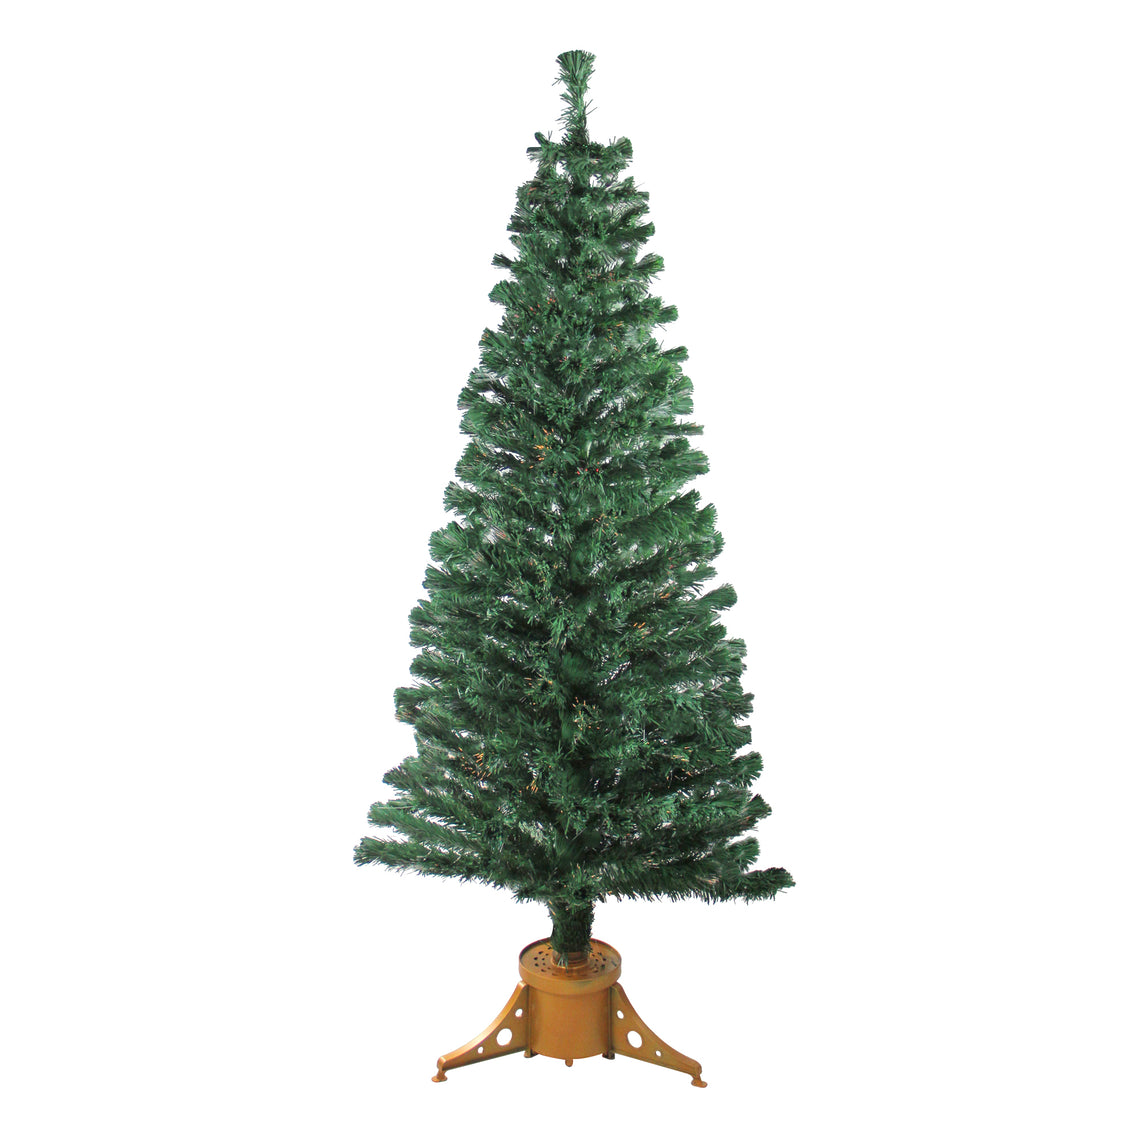 6' Pre-Lit Color Changing Fiber Optic Artificial Christmas Tree